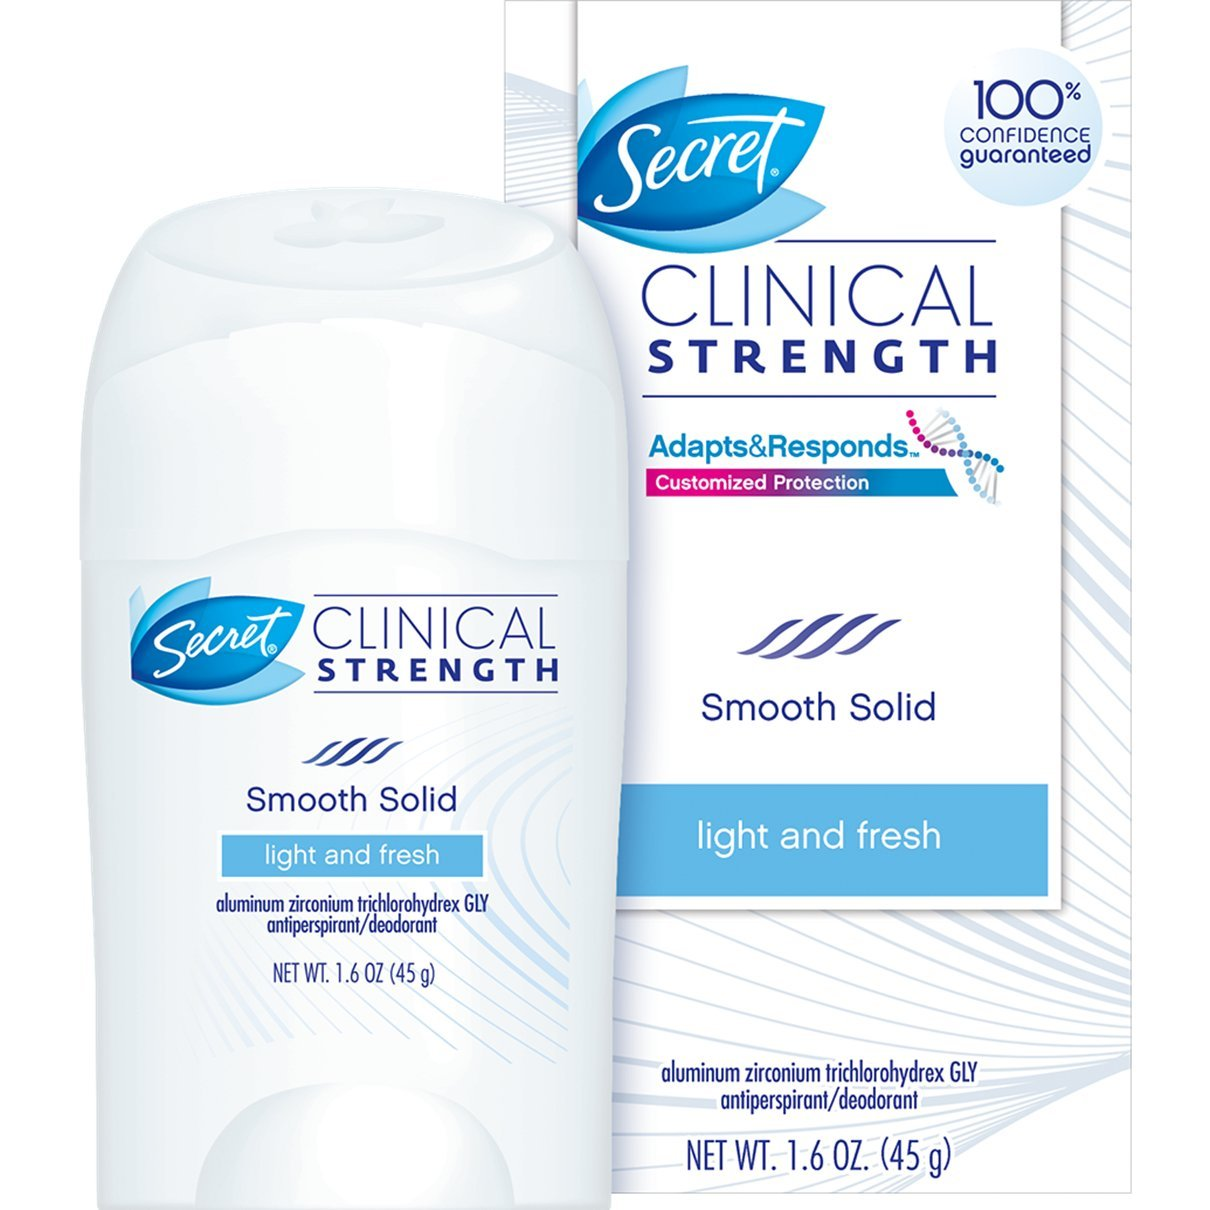 Secret Clinical Strength Soft Solid Antiperspirant and Deodorant, Light and Fresh Scent, 1.6 Ounce (Pack of 3)